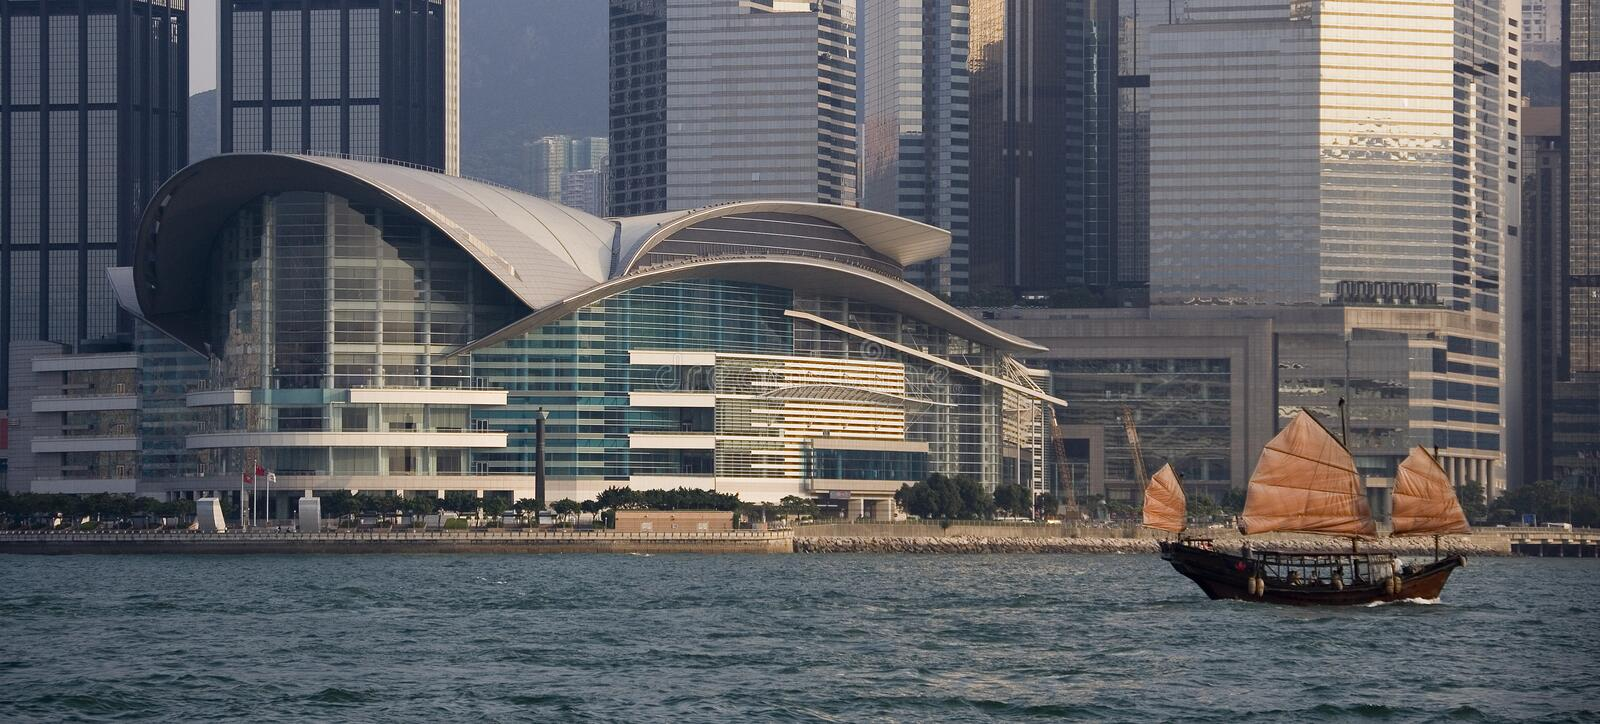 Chinese Junk in Hong Kong. Chinese Junk passing the Convention Center in Hong Kong Harbor royalty free stock photo